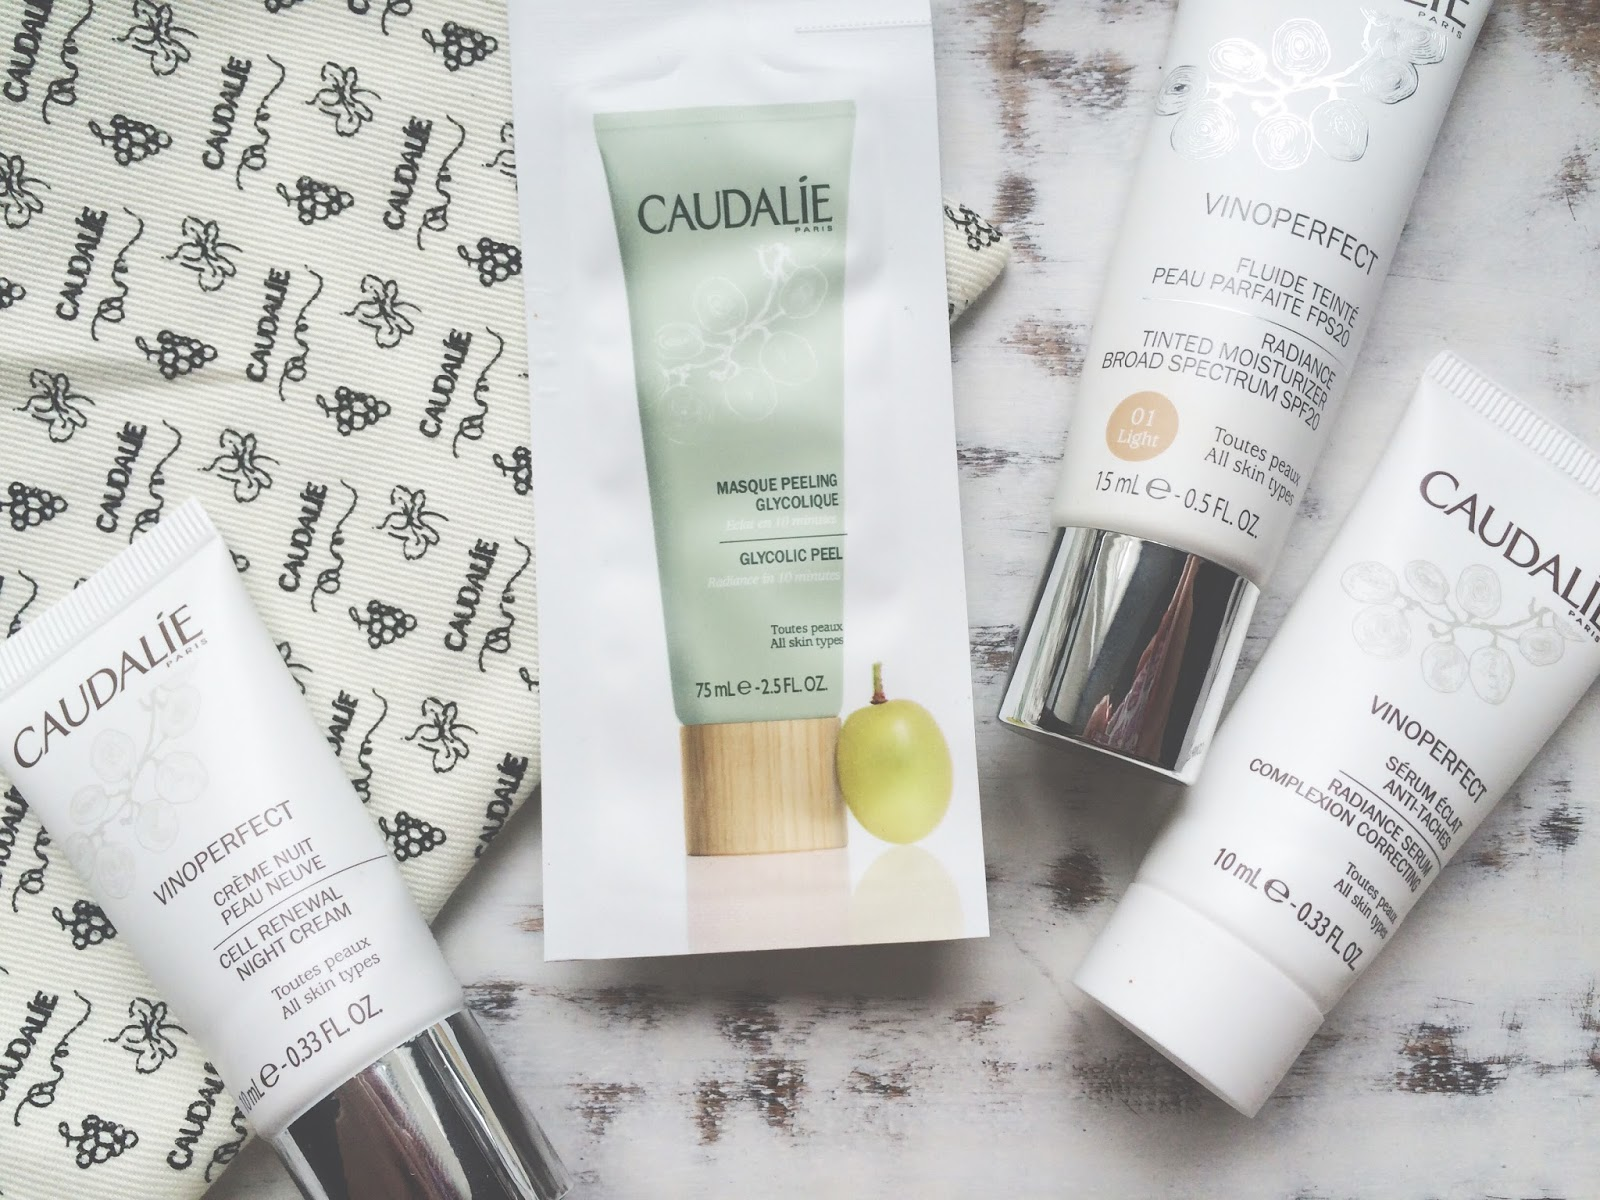 An example of what comes in the Caudalie Vinoperfect box